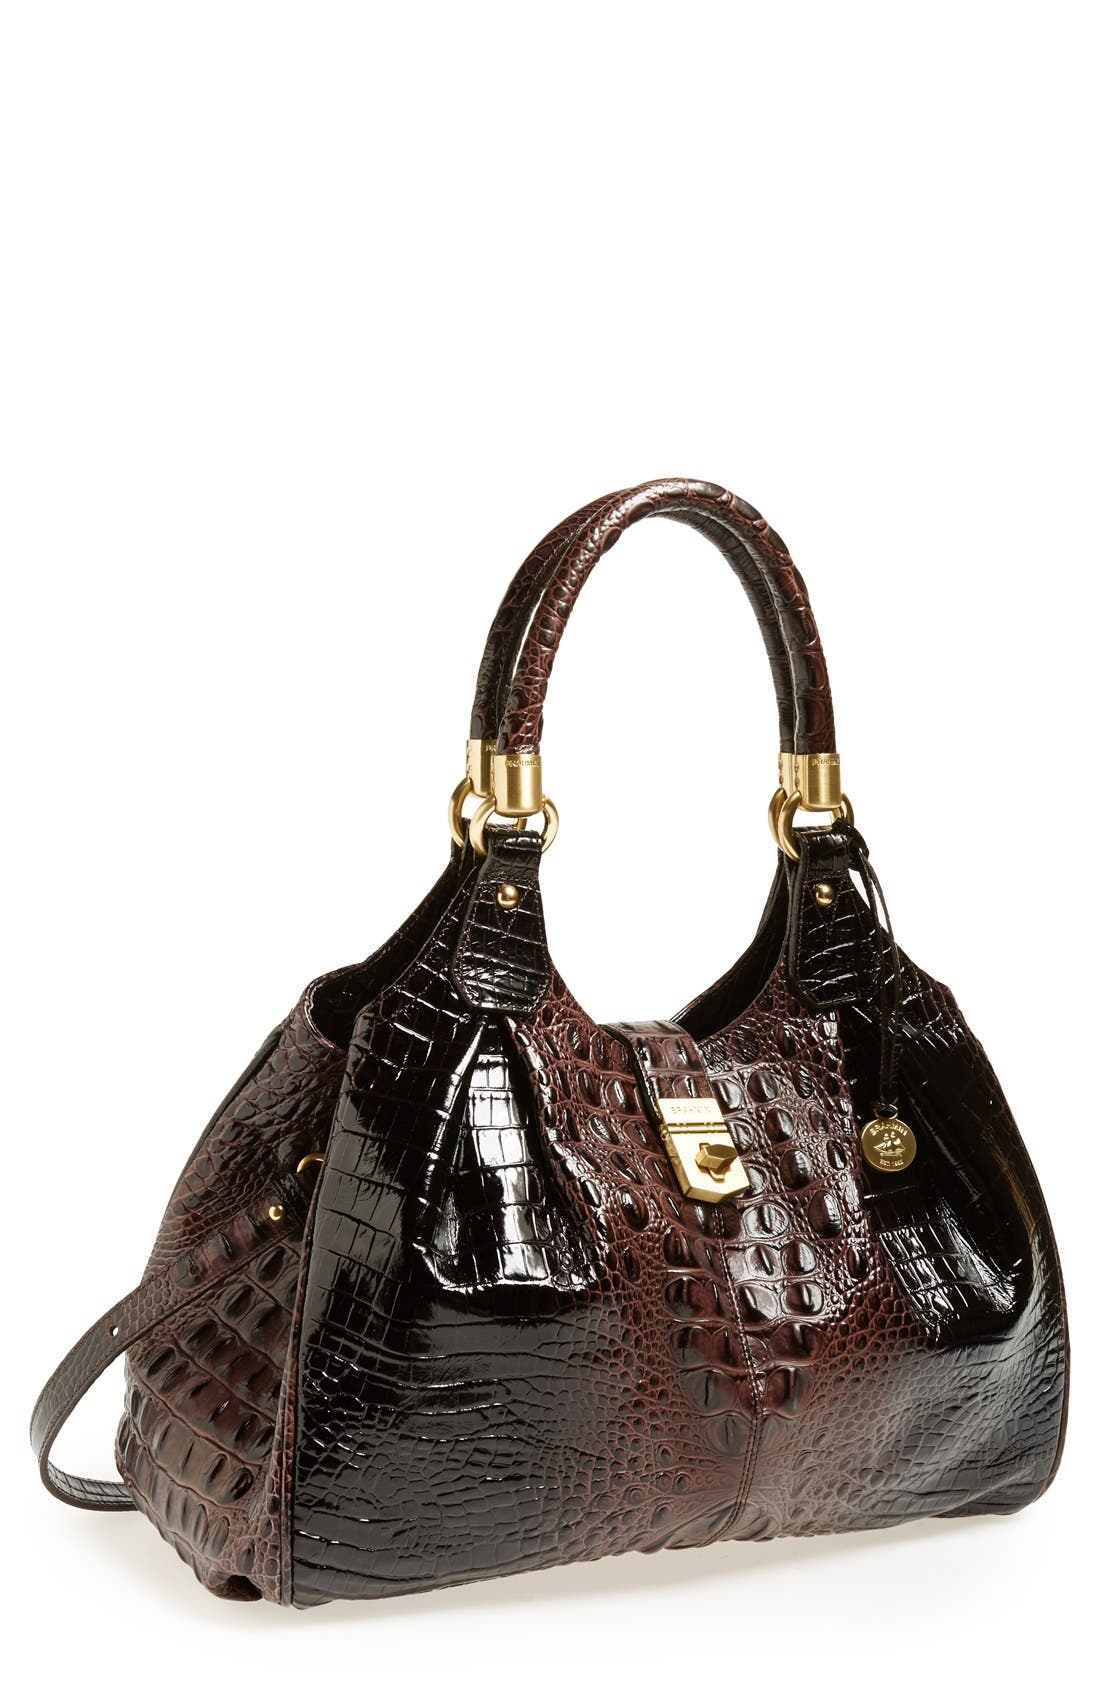 BRAHMIN 'Elisa' Croc Embossed Leather Shoulder Bag